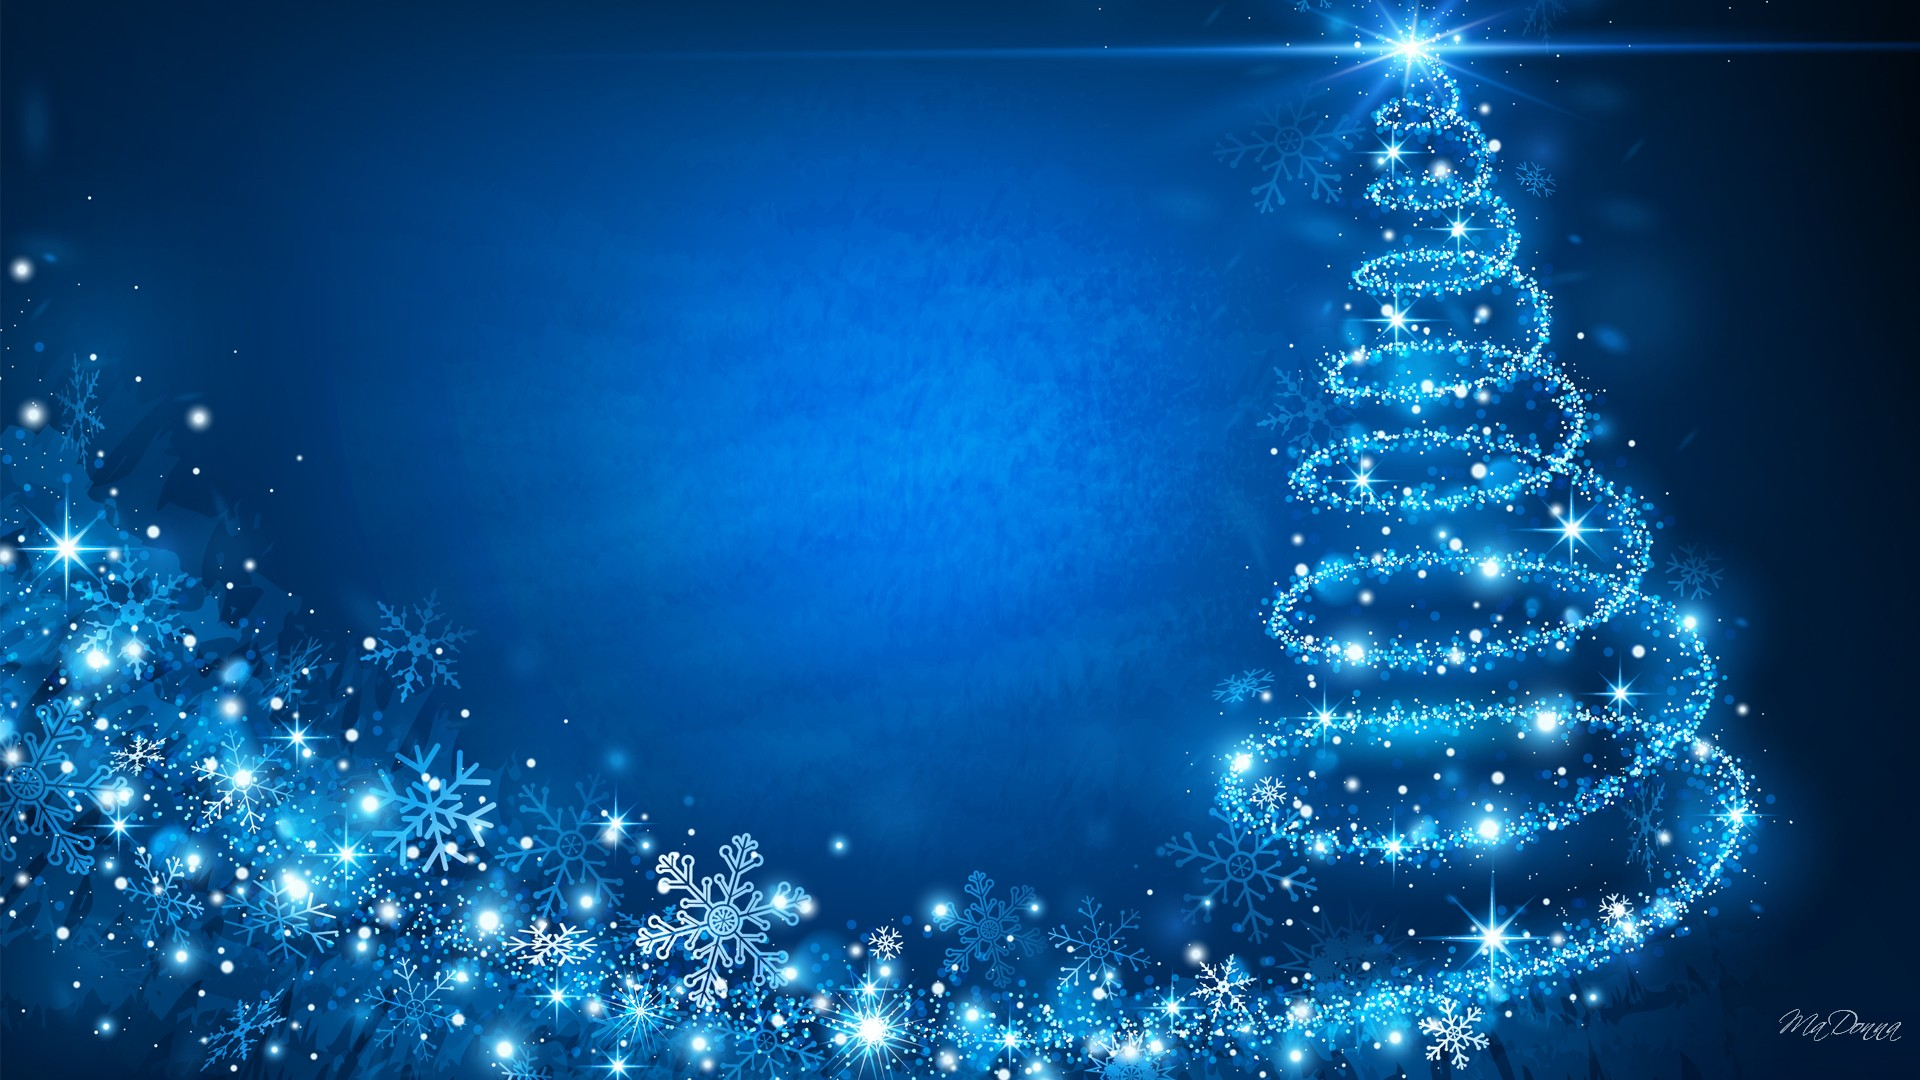 Blue Wallpaper Hd Download Christmas Backgrounds Wallpapers Sf Wallpaper